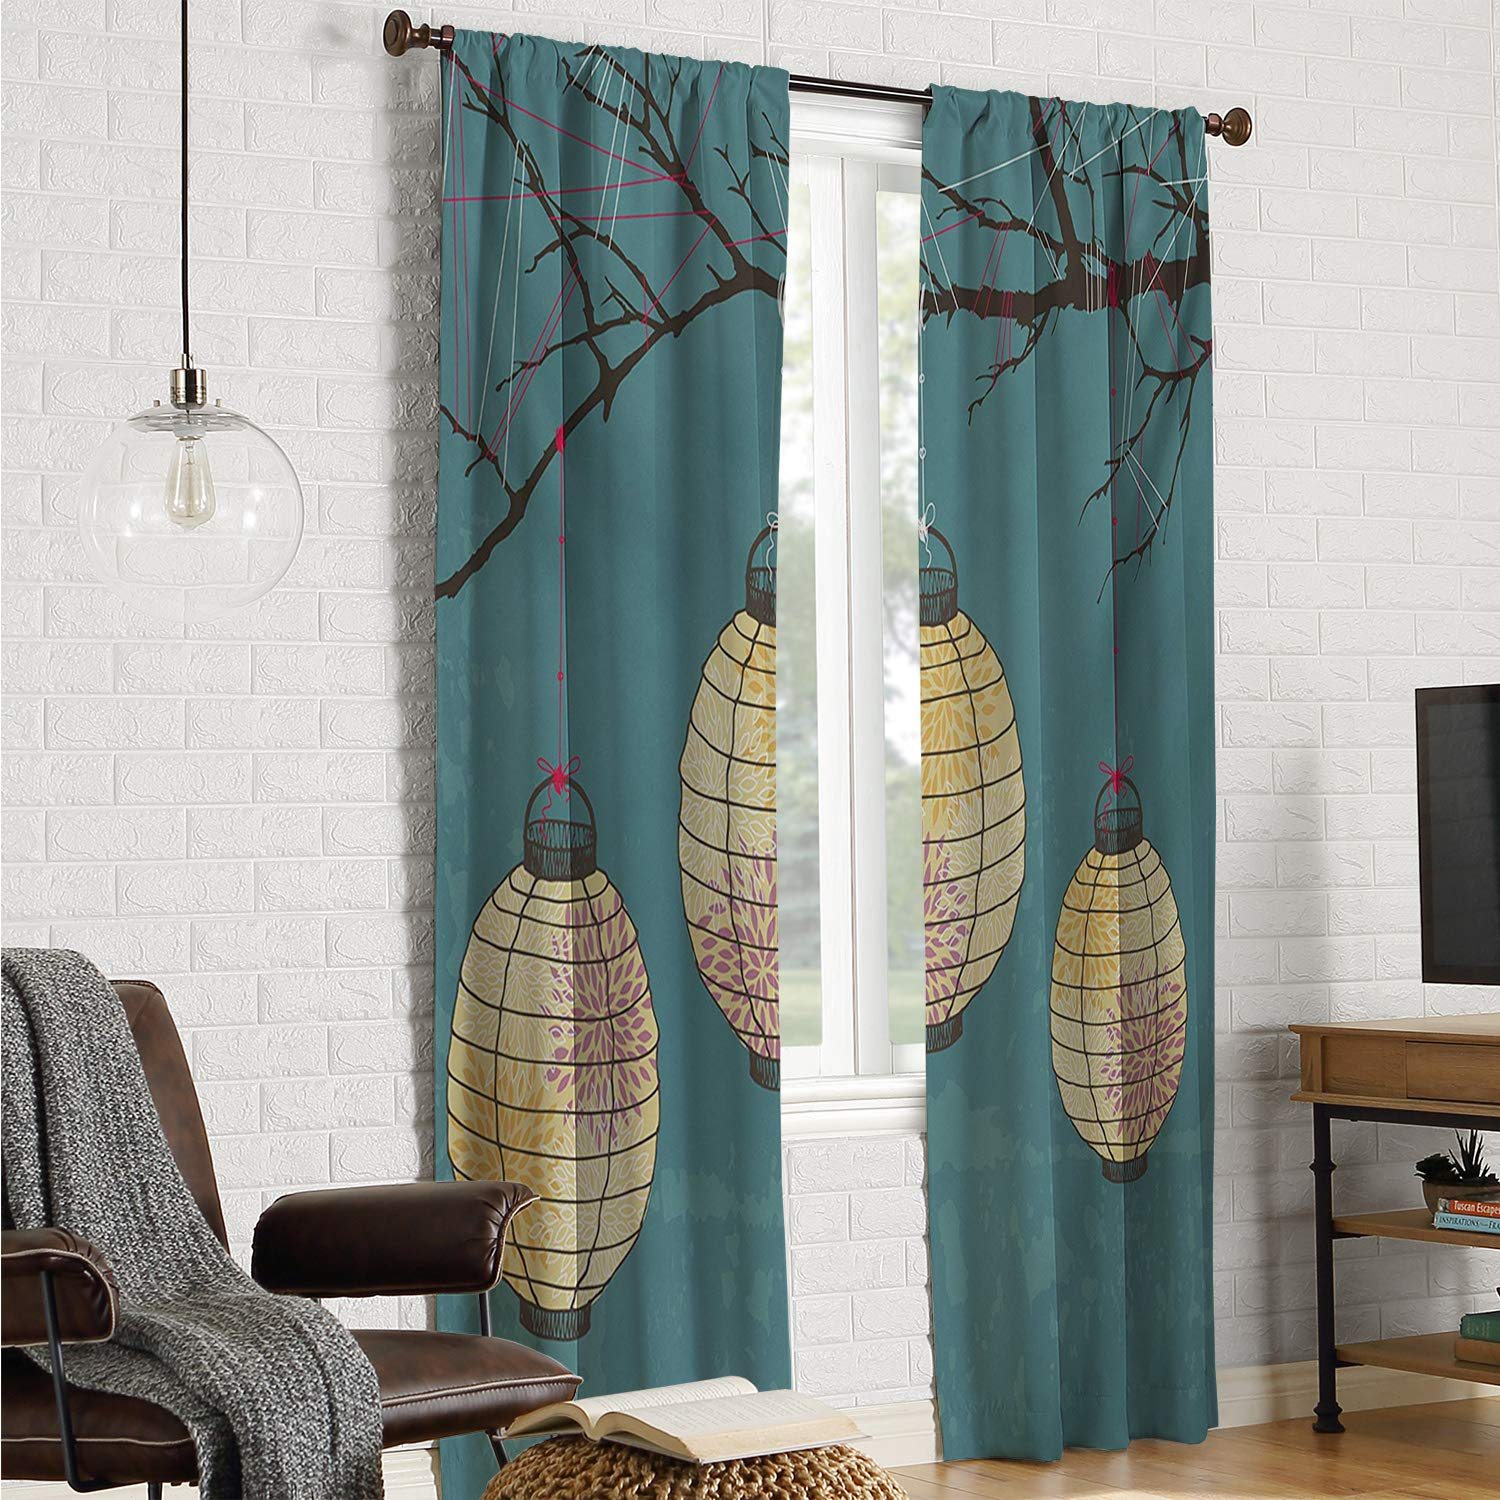 Mozenou Sliding Door Curtains soundproof Curtain Lantern,Three Paper Lanterns Hanging on Branches Lighting Fixture Source Lamp Boho,Teal Pale Yellow W84 x L96 Inch